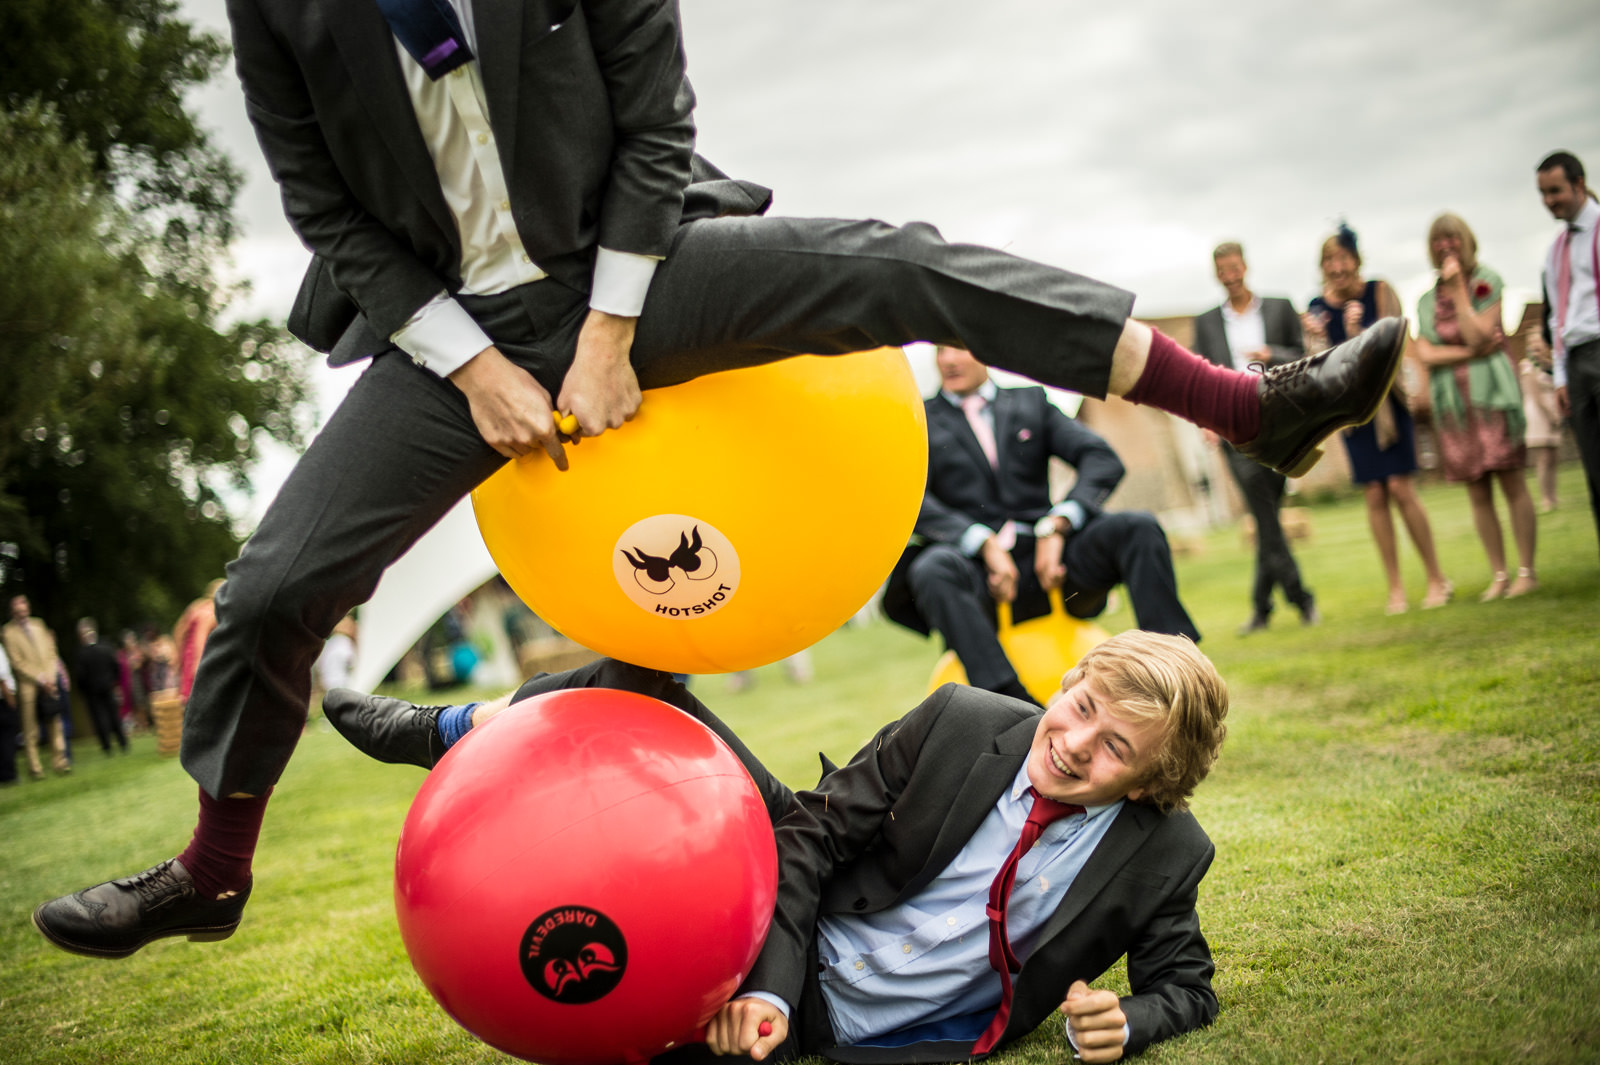 Wedding guests race on space hoppers